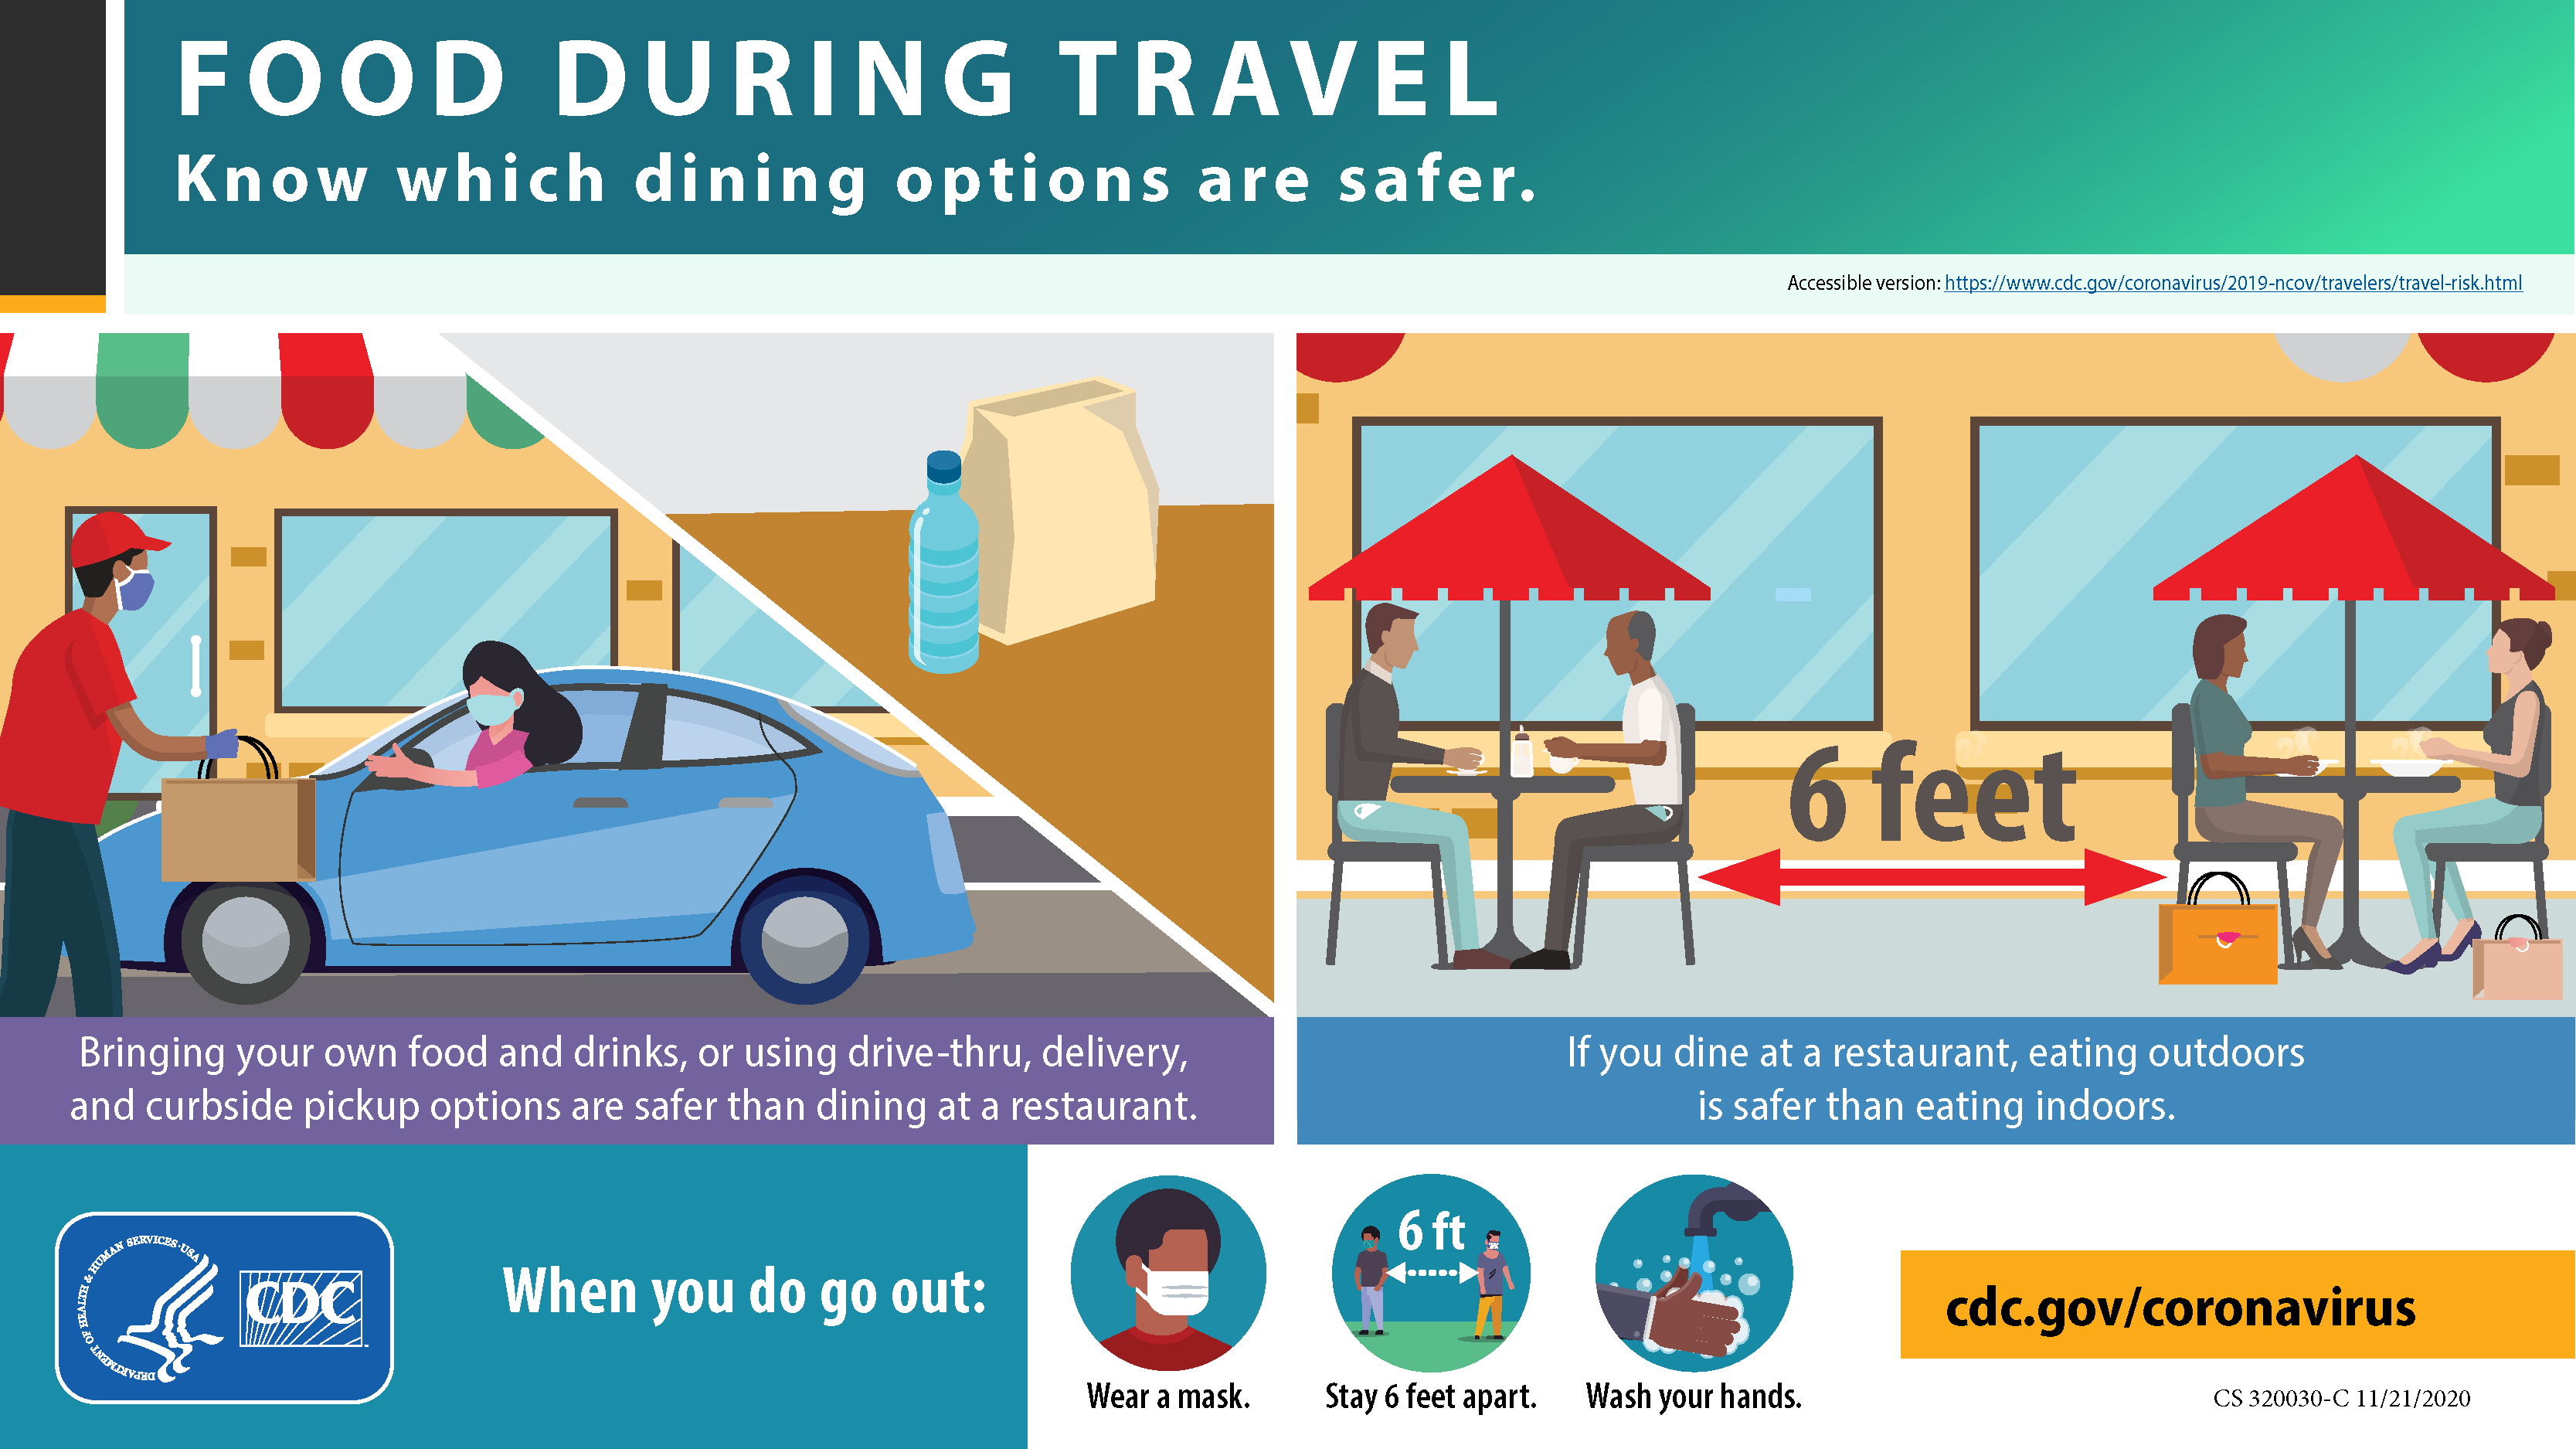 Know Your Travel Risk - Food During Travel